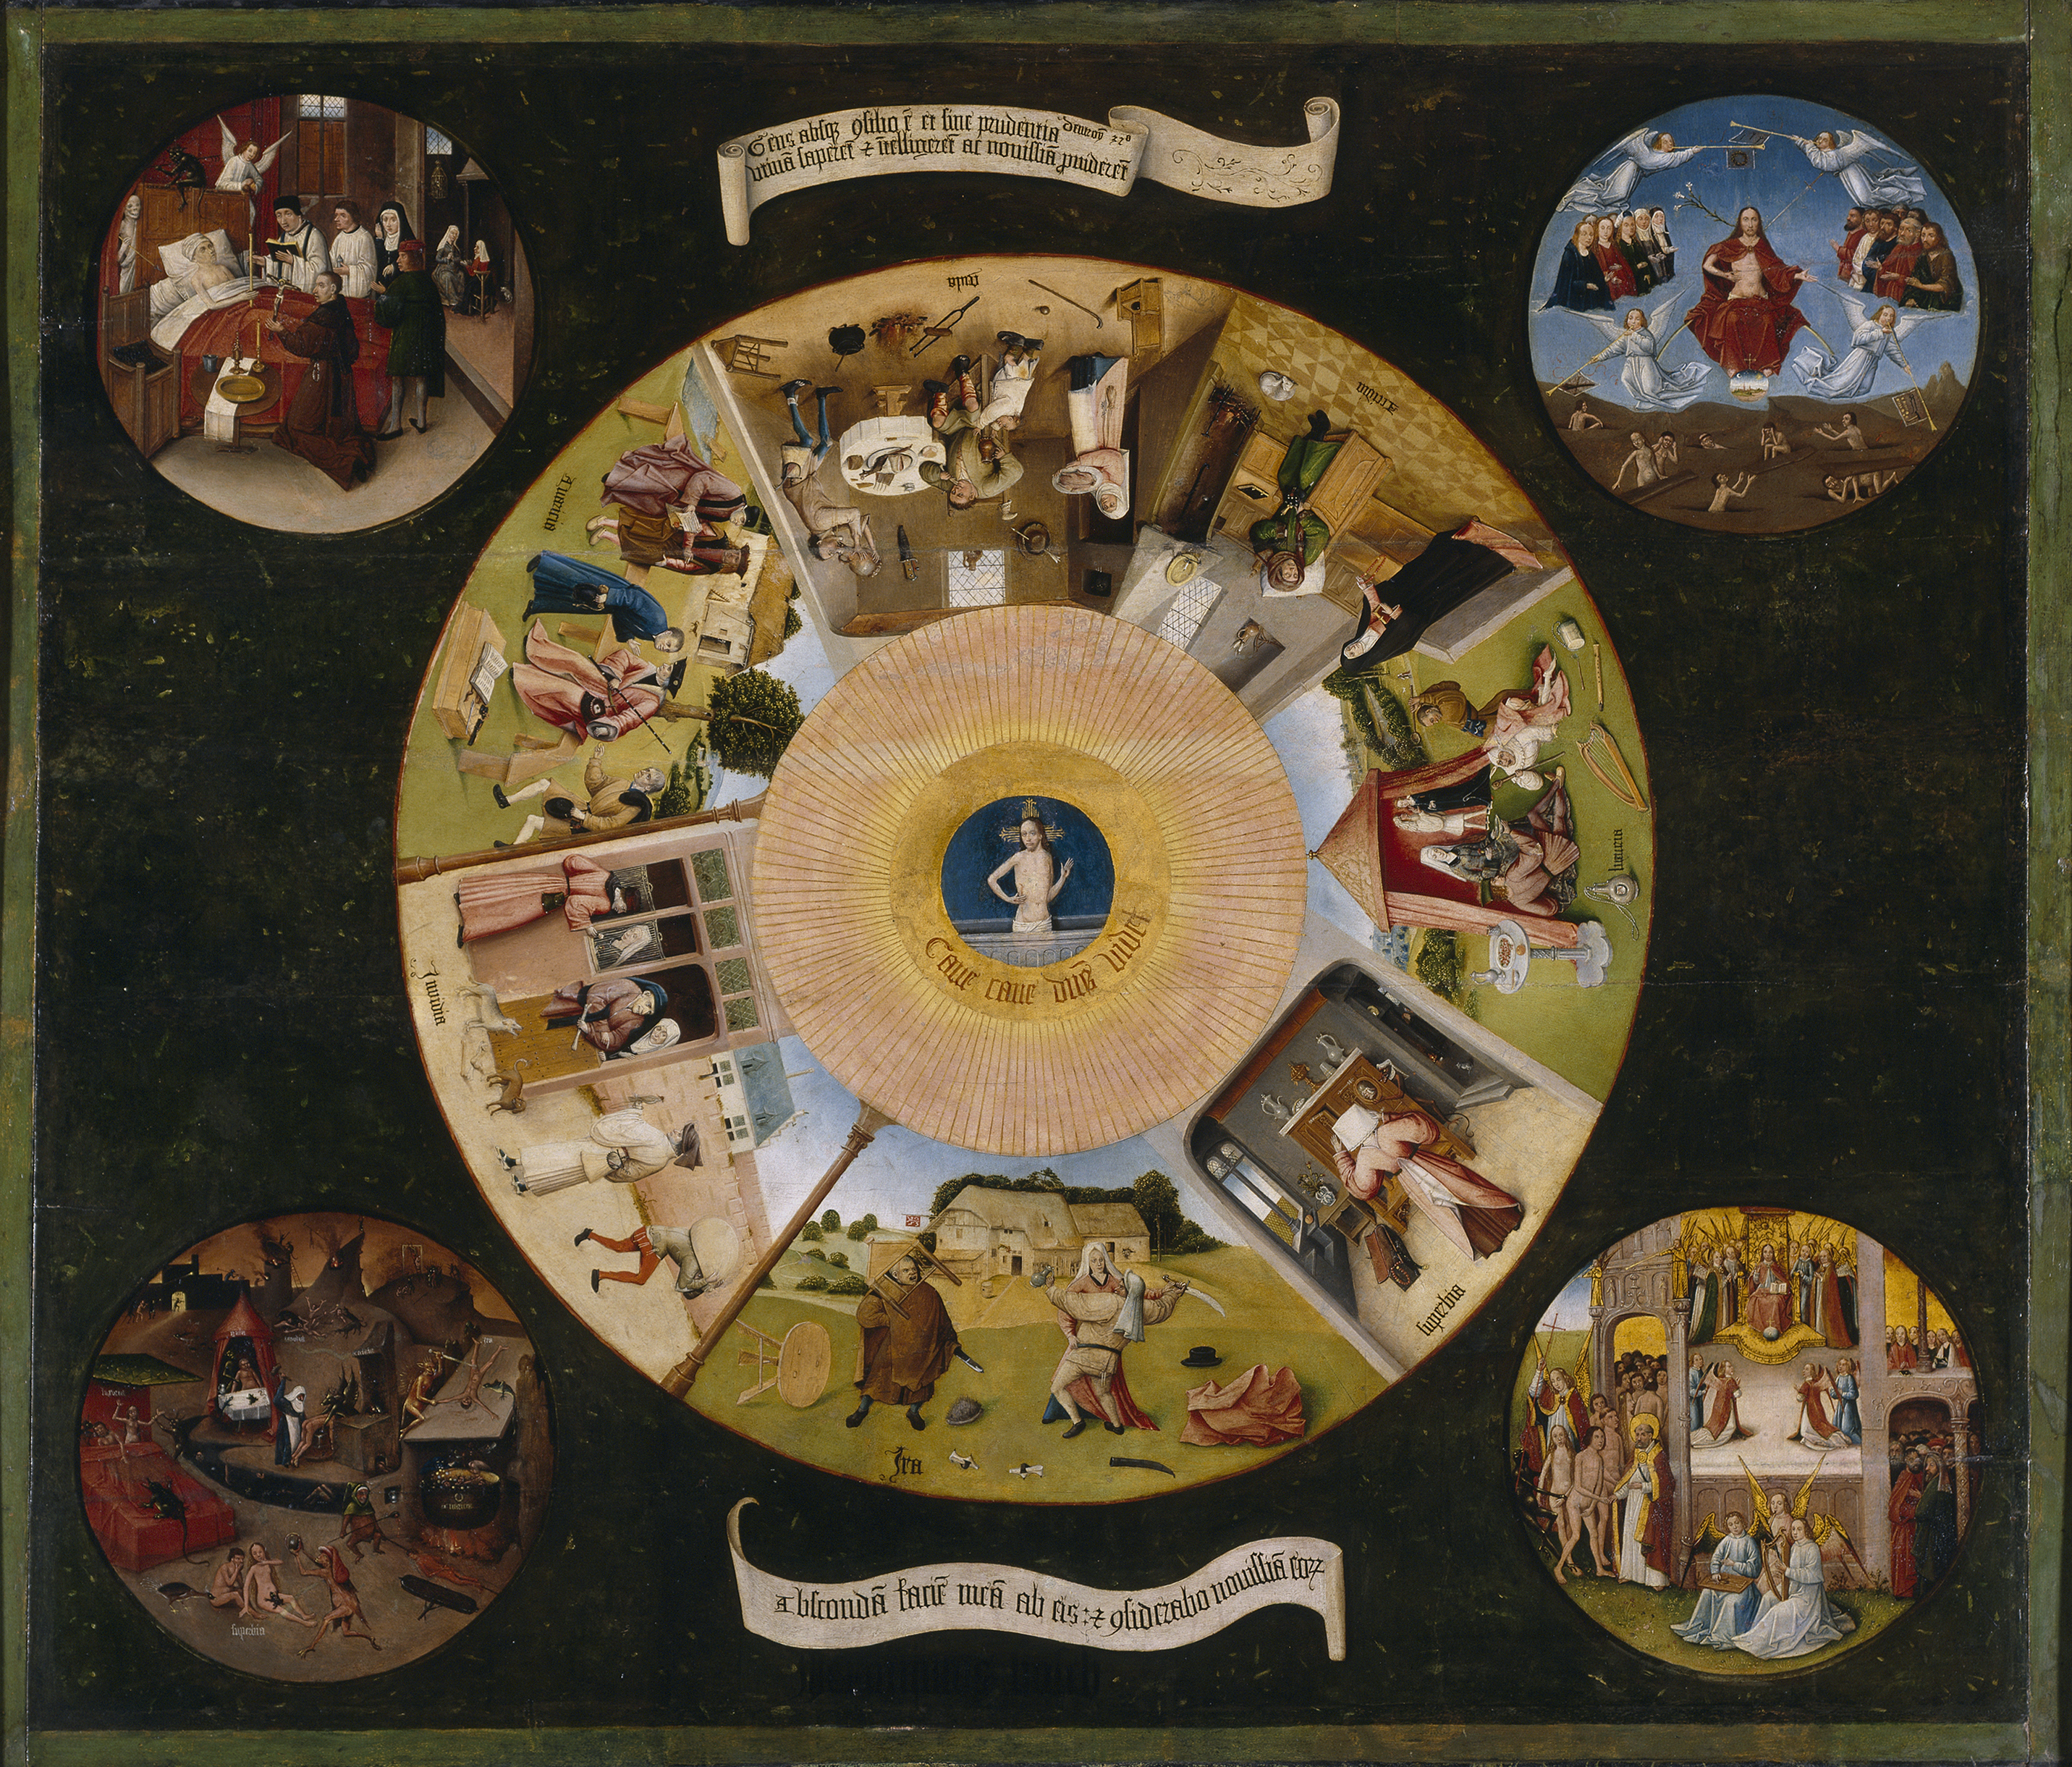 https://upload.wikimedia.org/wikipedia/commons/0/03/Hieronymus_Bosch-_The_Seven_Deadly_Sins_and_the_Four_Last_Things.JPG